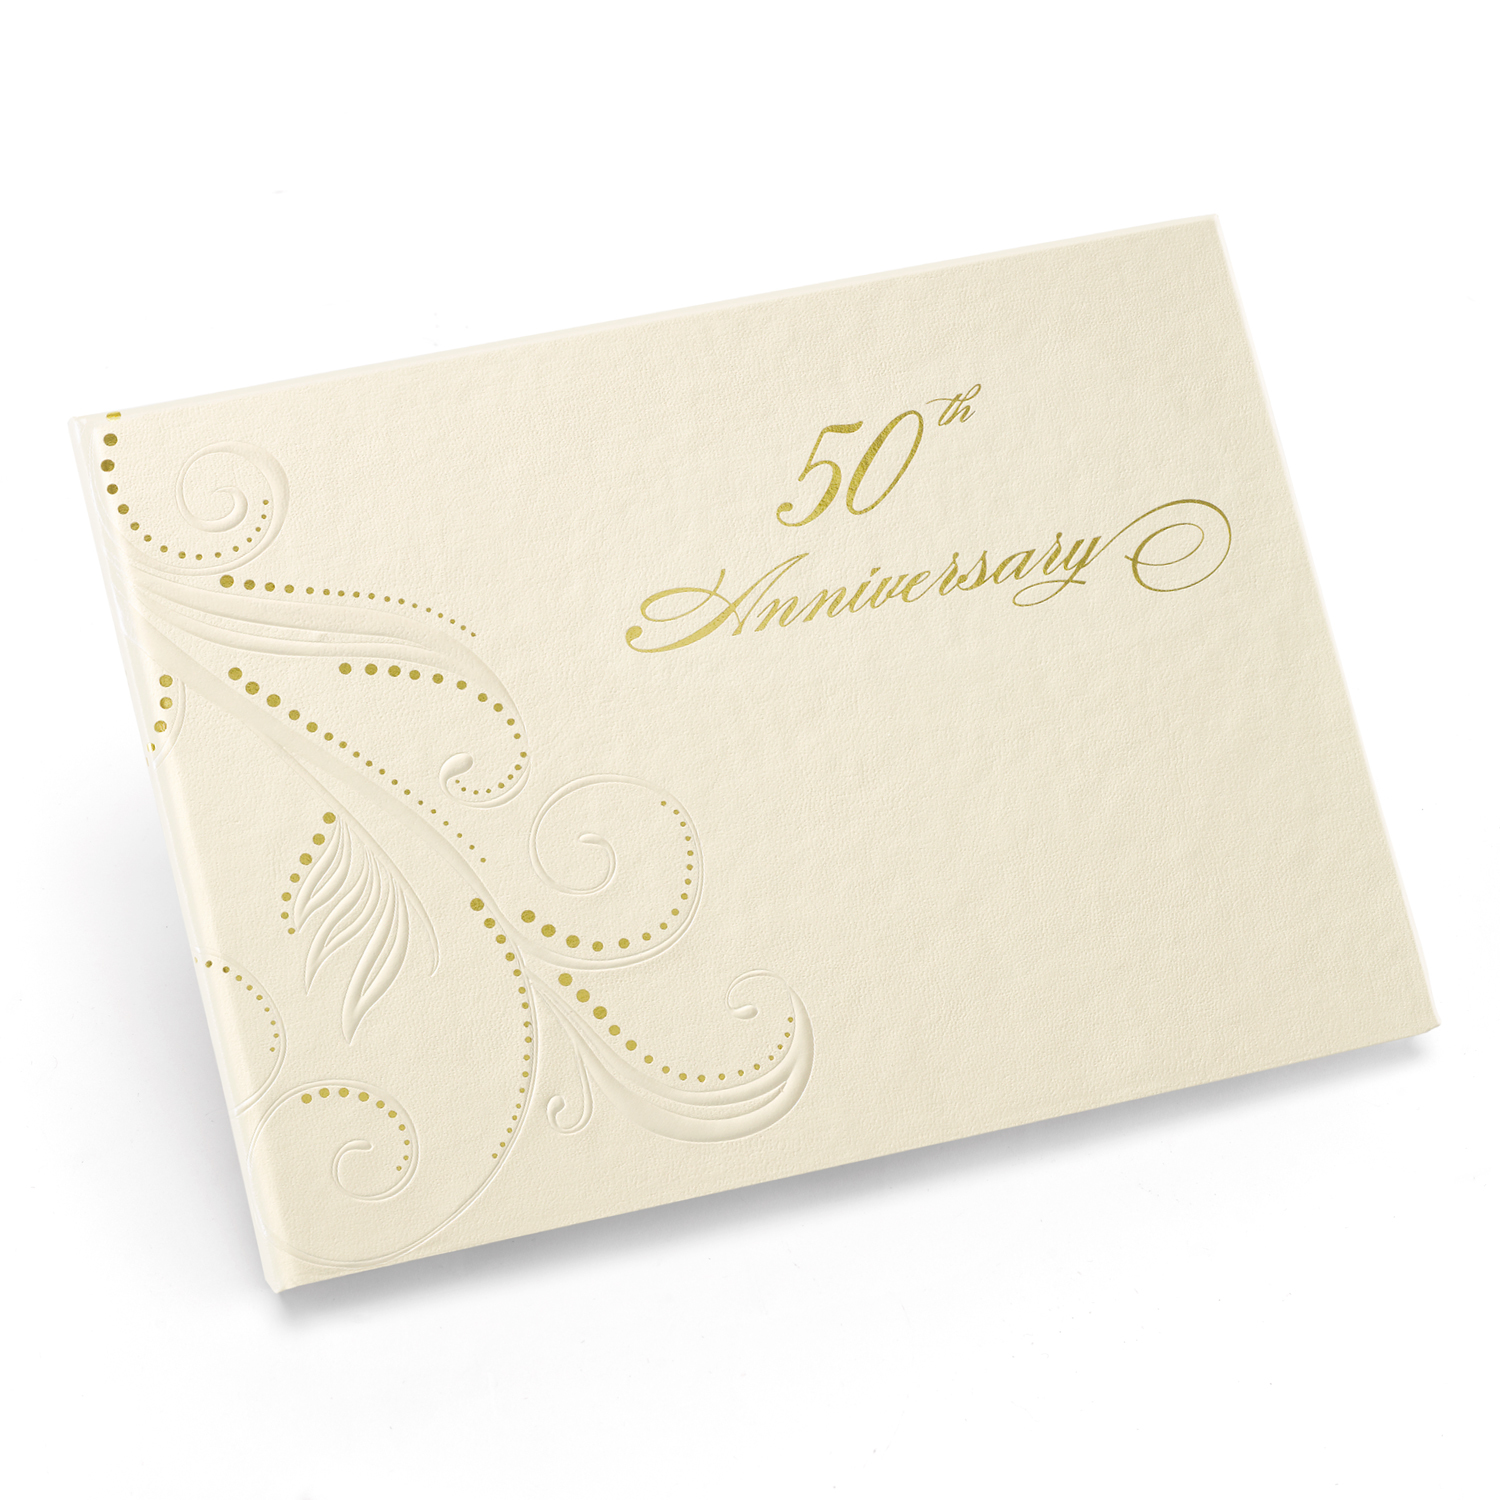 50th anniversary guestbook